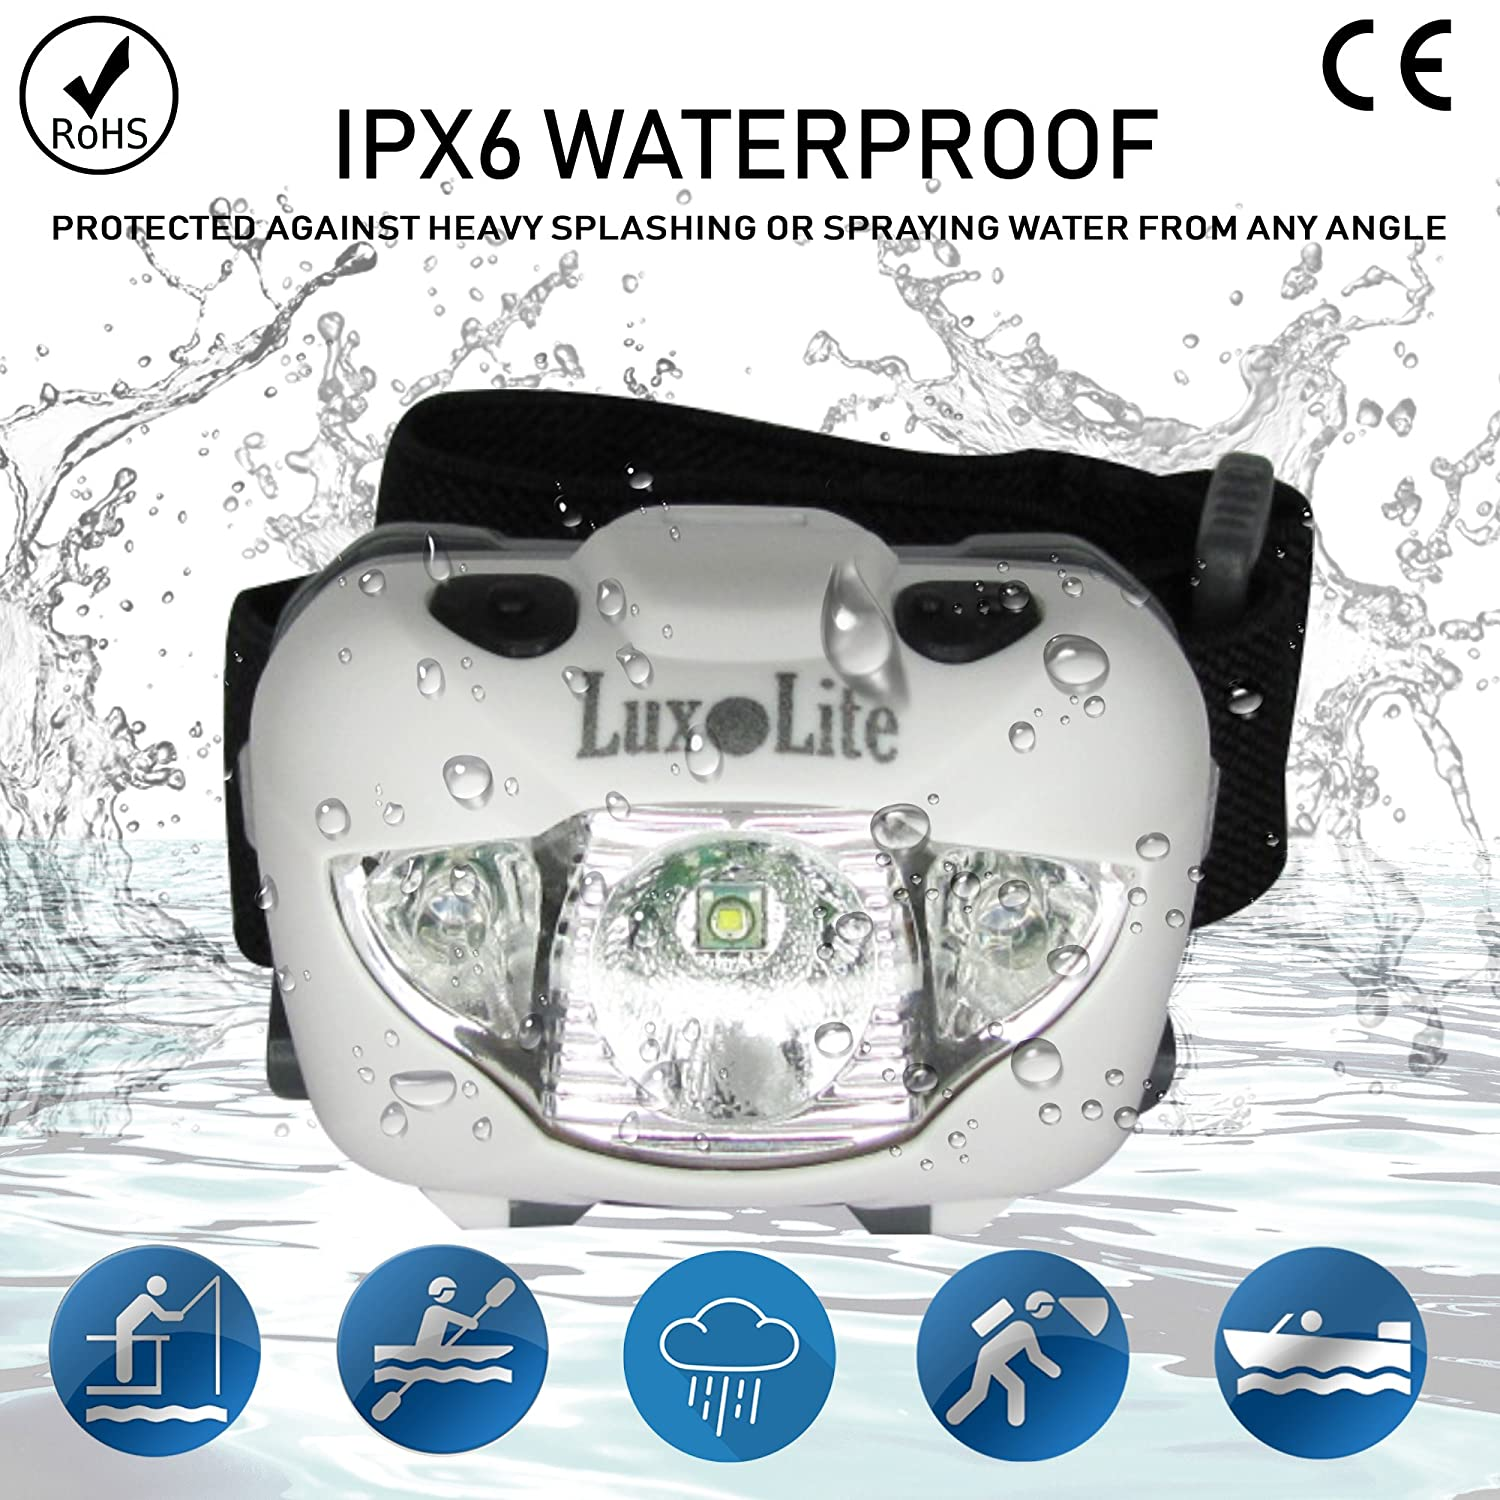 Luxolite Waterproof Head Lights LED with Red Light - Super Bright Head Torch Flashlights for Camping Hiking Running Fishing Hunting Walking Reading -...